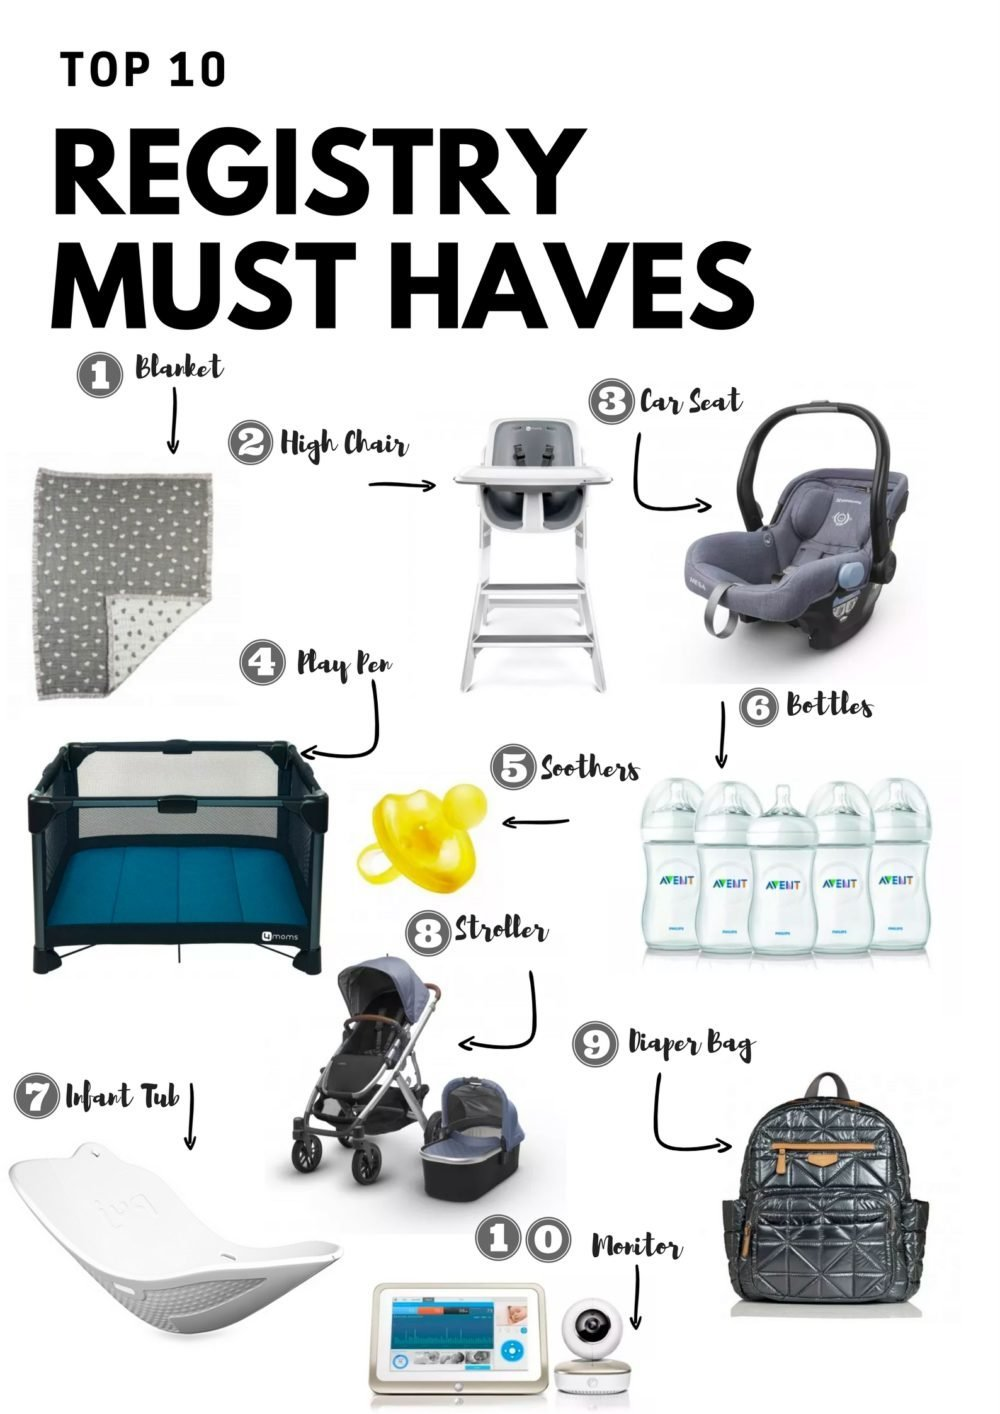 Jaclyn Colville's Top 10 Registry Must-Haves Infographic